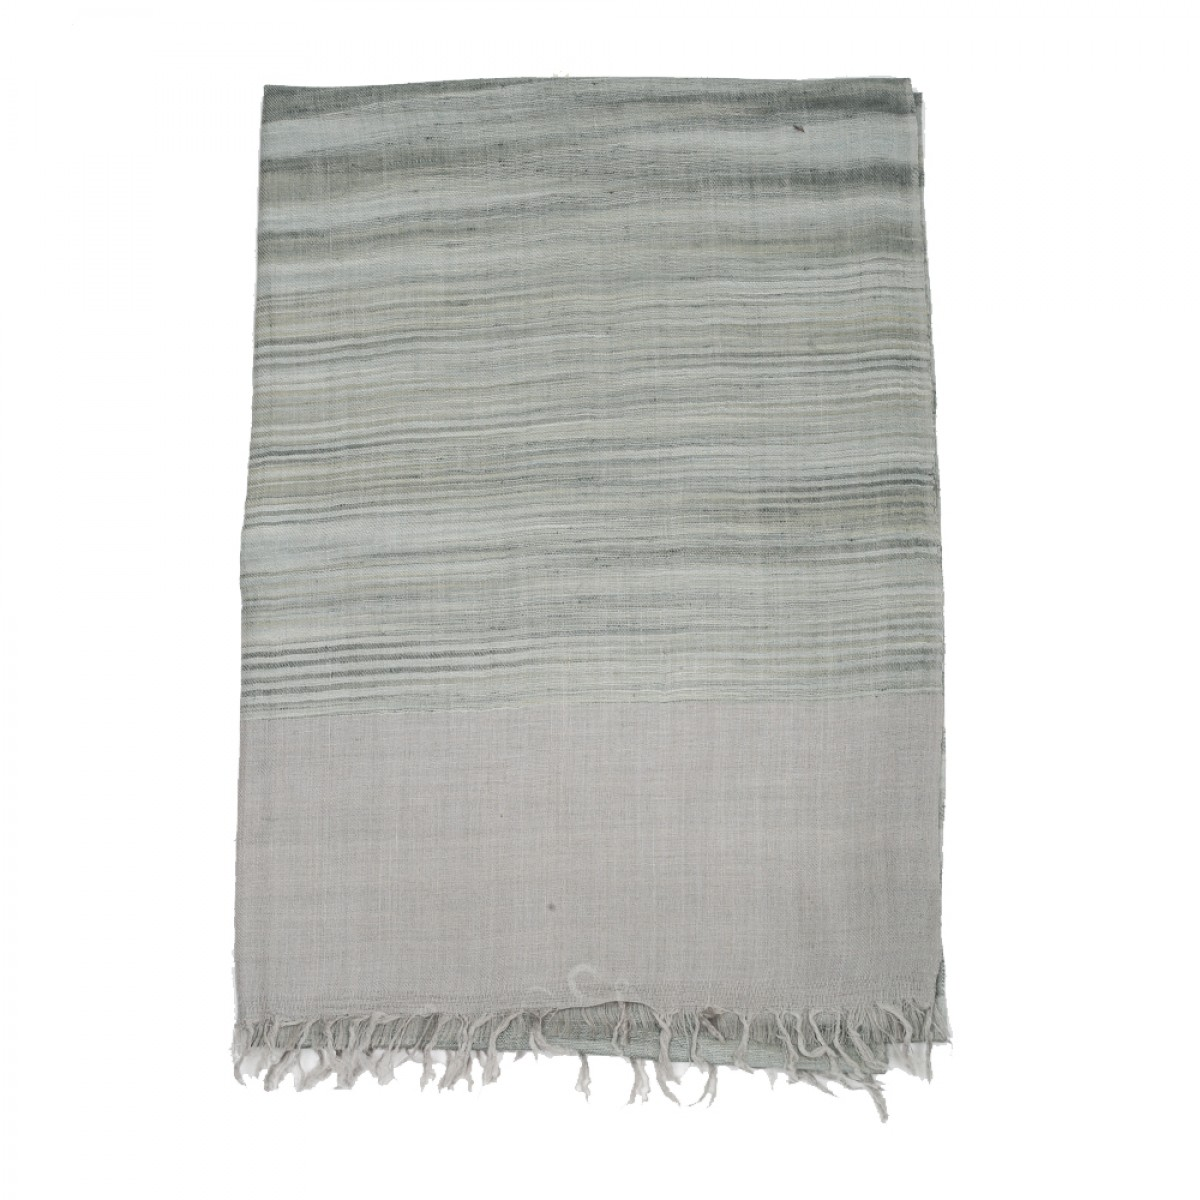 Ikat Cashmere Pashmina Stole - Light Grey